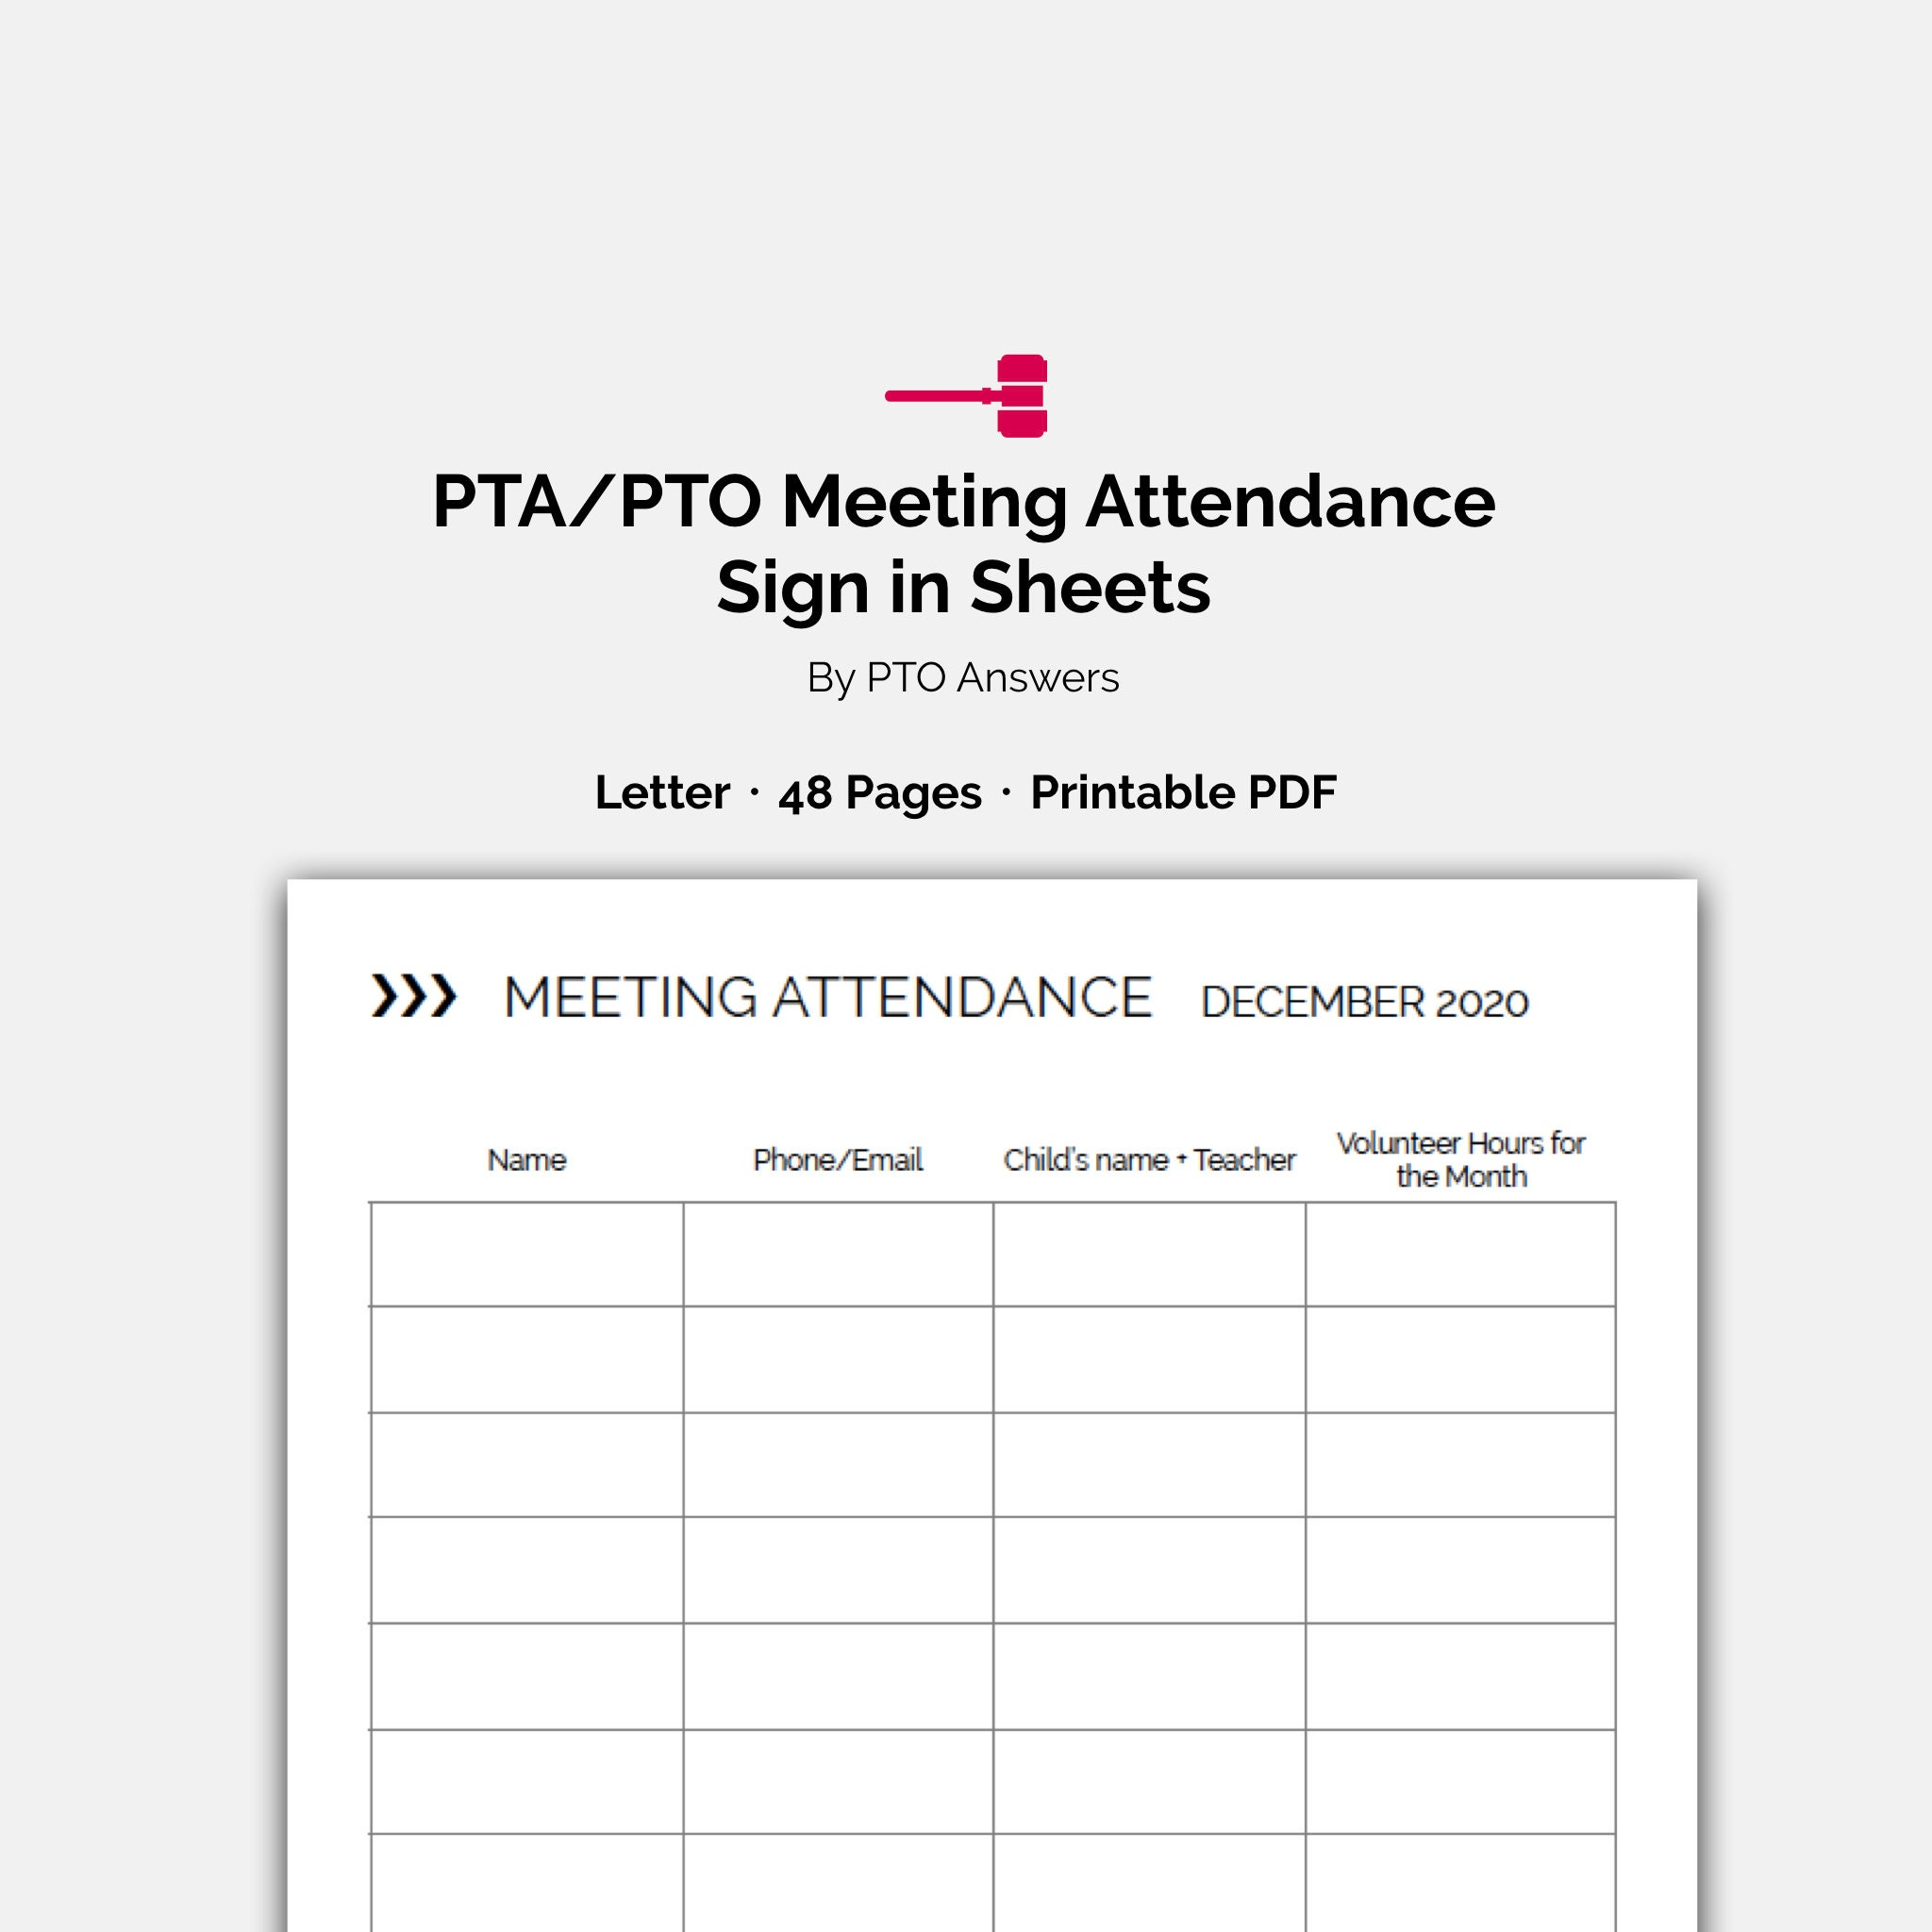 image relating to Free Printable Meeting Sign in Sheet named PTO Convention Attendance Indication Inside, Volunteer Hour Monitoring styles and attendance sheets for PTA Historians and PTO Volunteer Coordinators